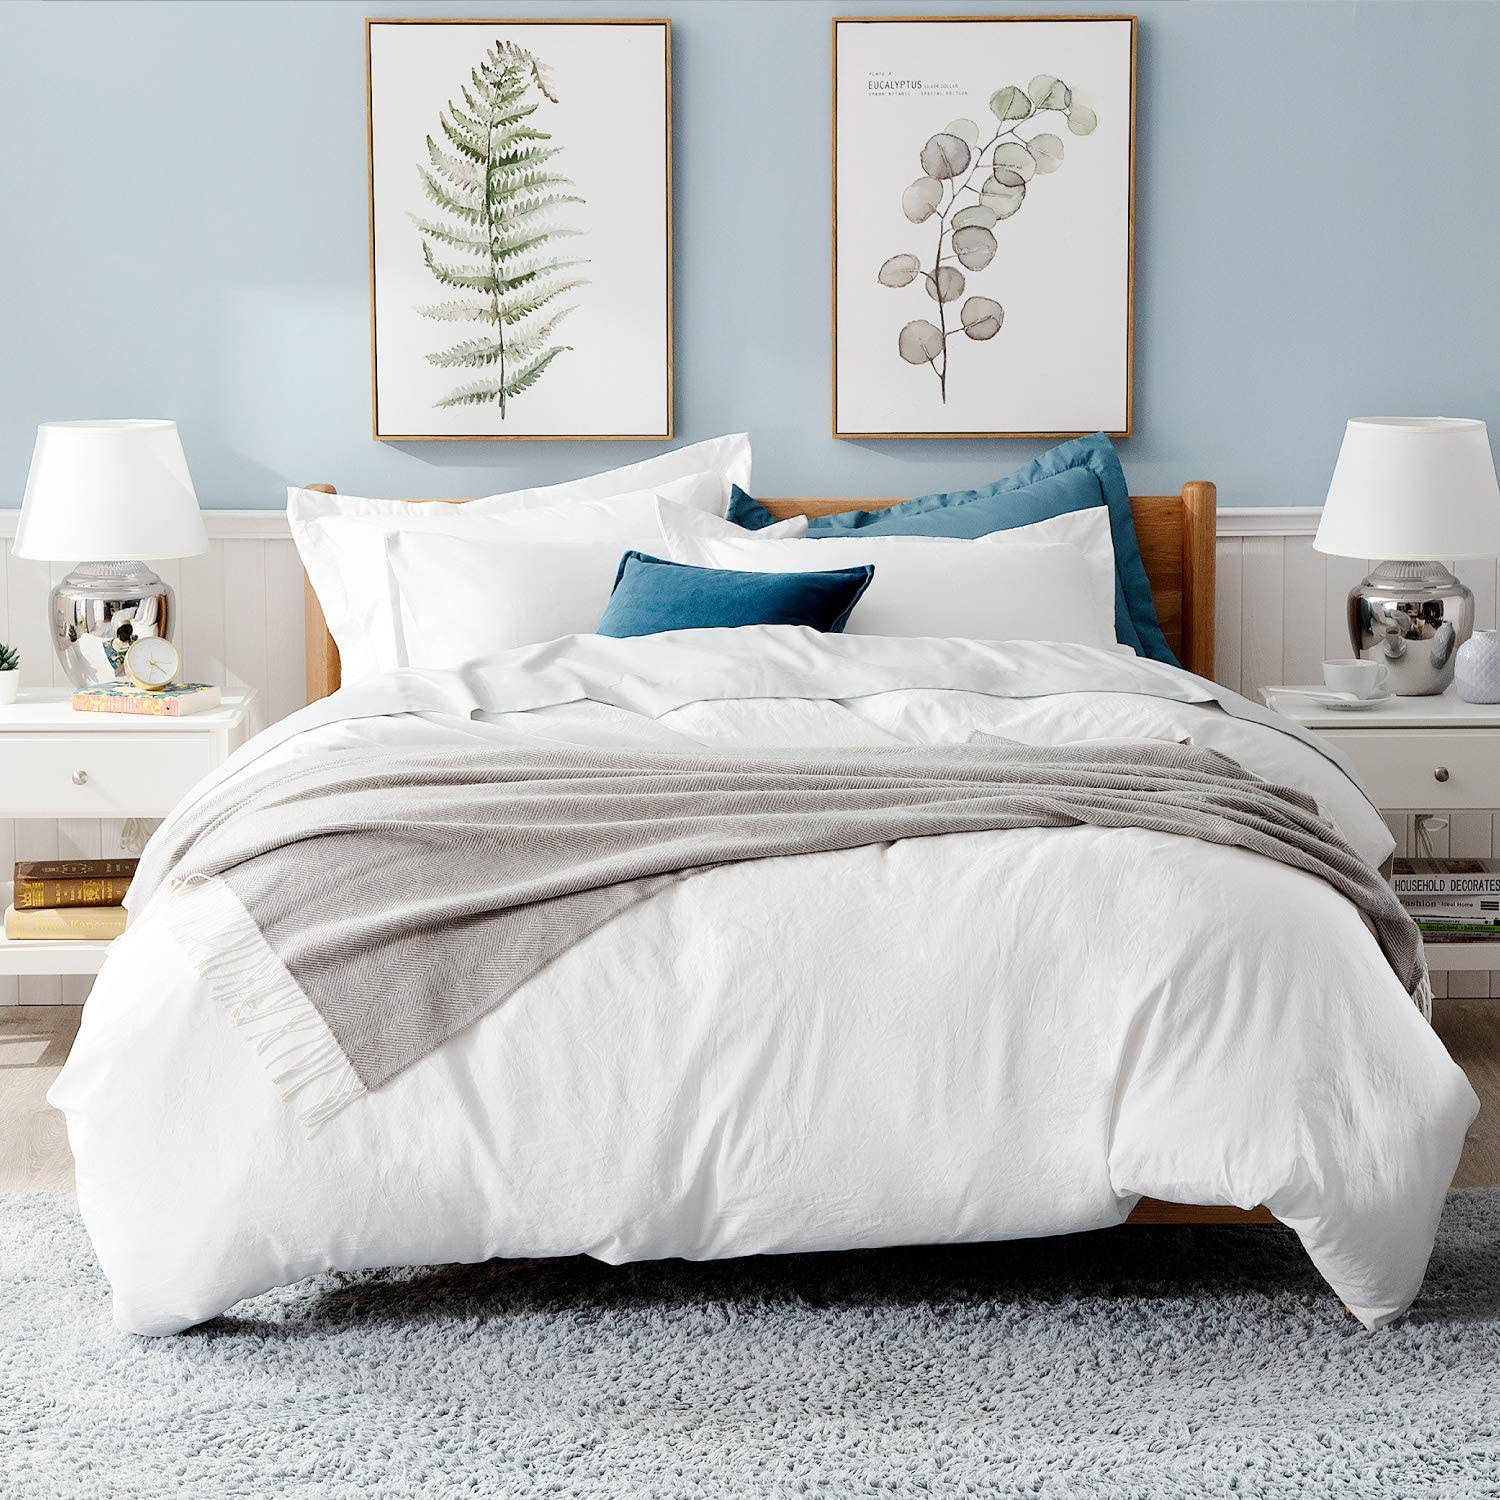 Review of Bedsure White Duvet Covers Queen Size Set 90x90 Full Queen Size with Zipper Closure